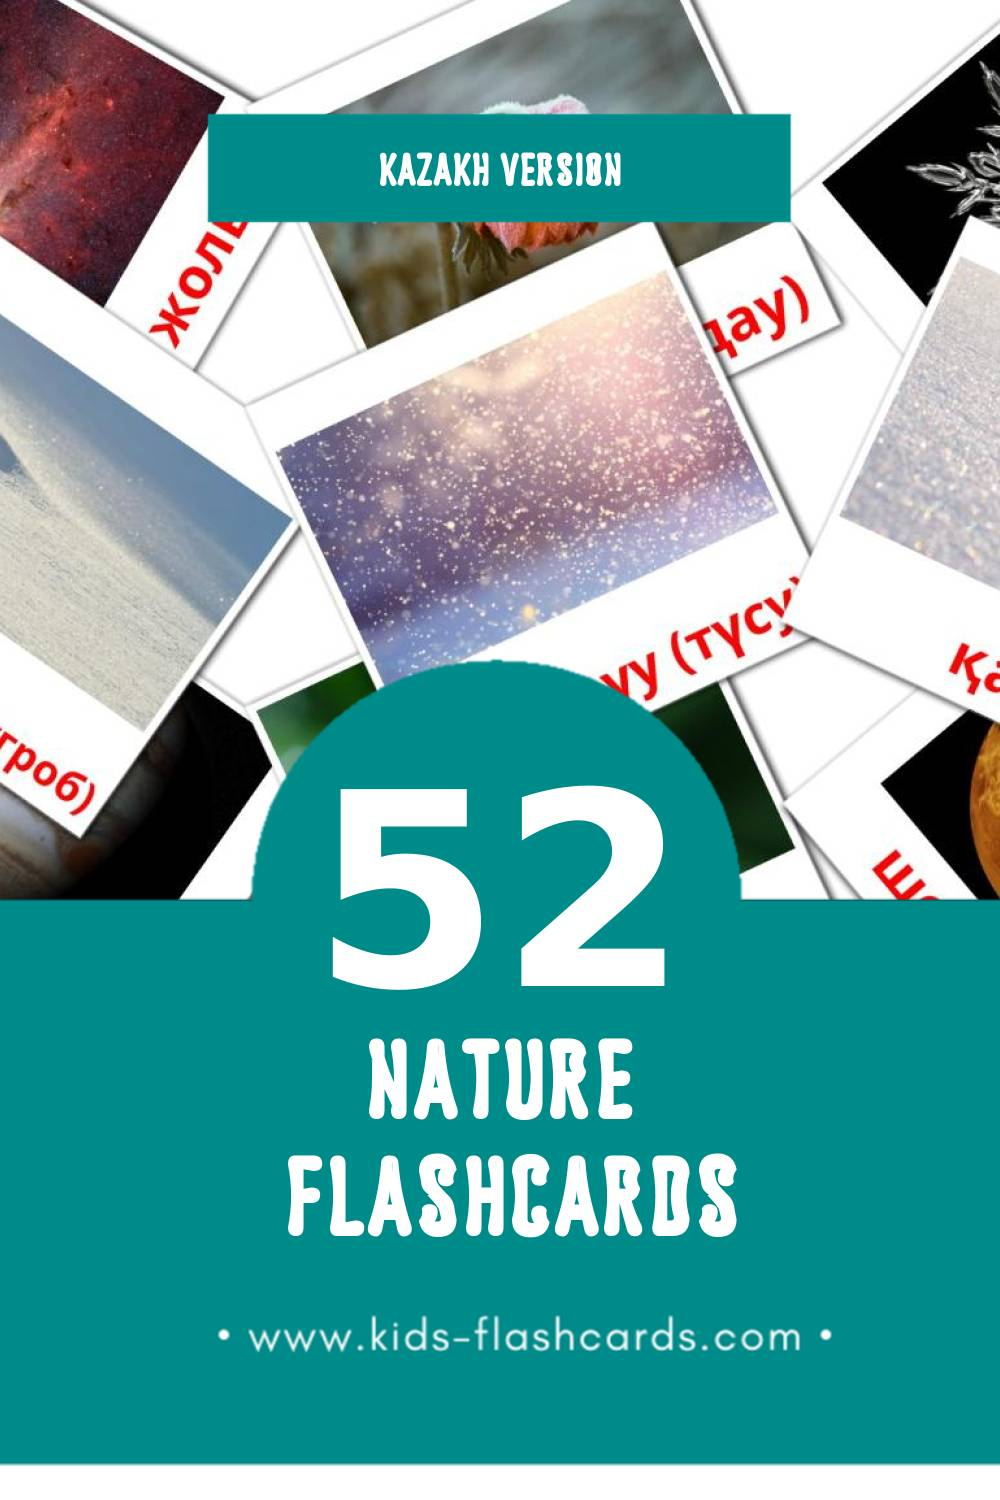 Visual Табиғат Flashcards for Toddlers (51 cards in Kazakh)